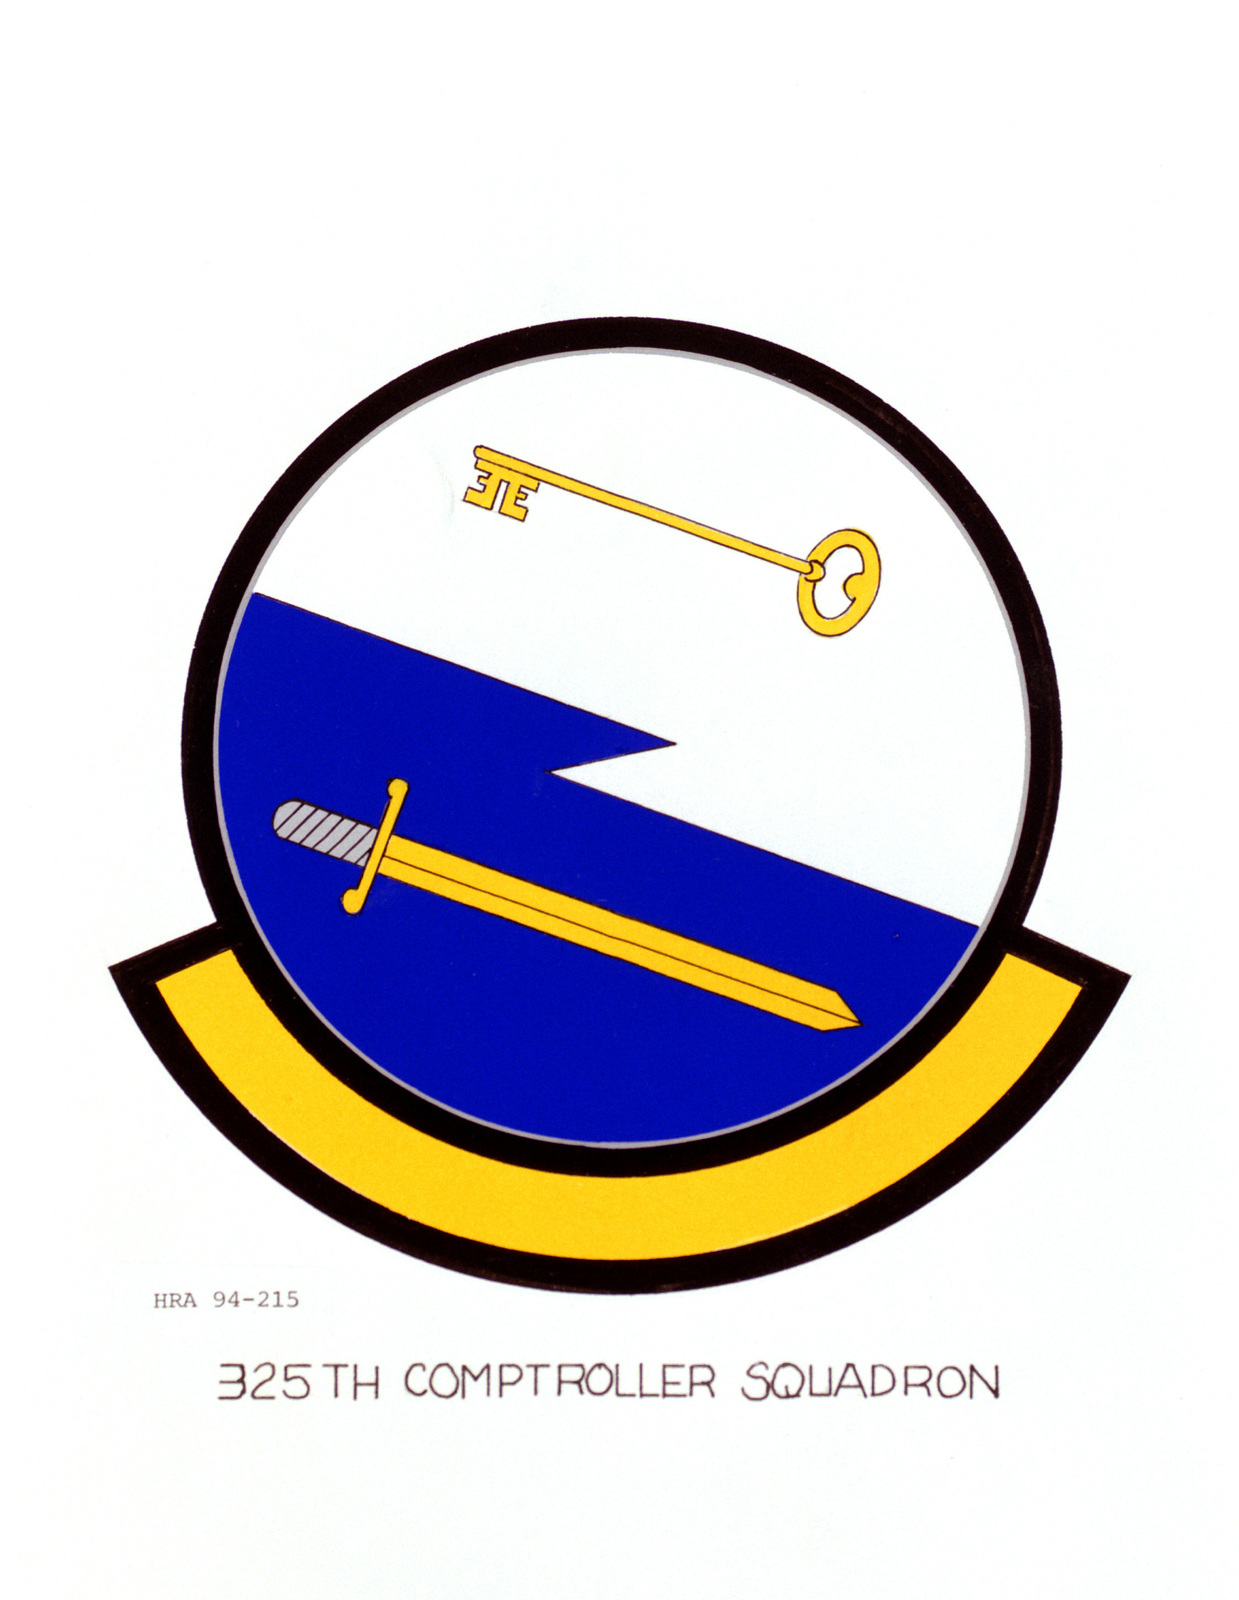 Approved Insignia of the 325th Comptroller Squadron